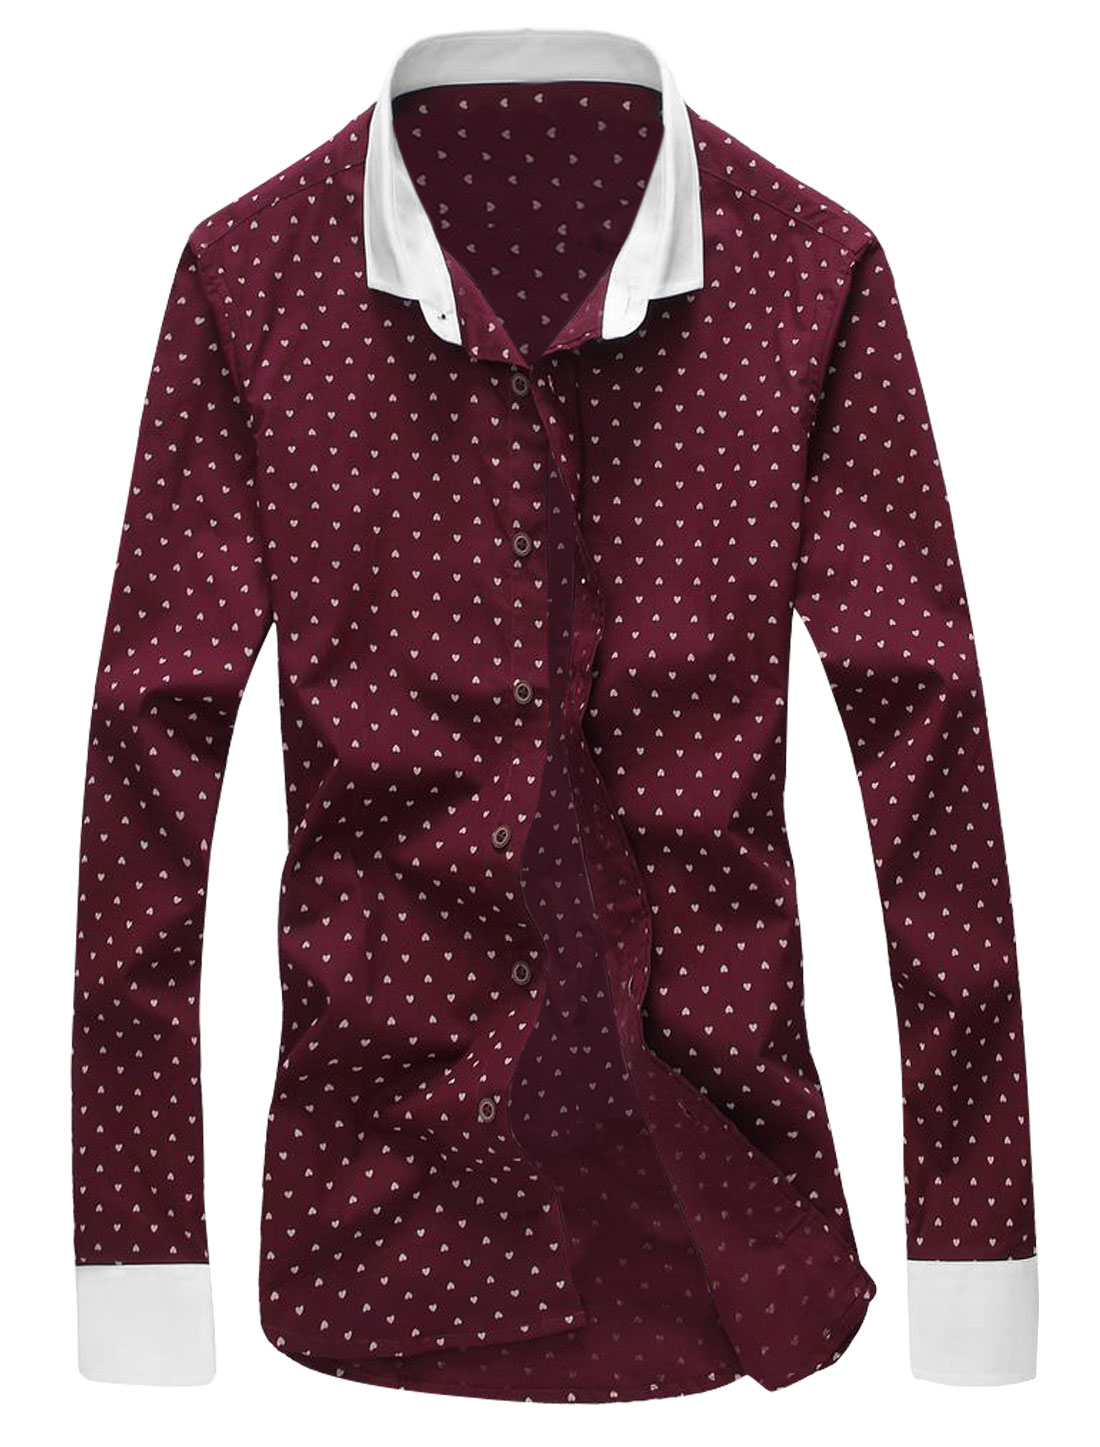 Men Long Sleeve Point Collar Hearts Print Casual Slim Fit Shirts Burgundy M